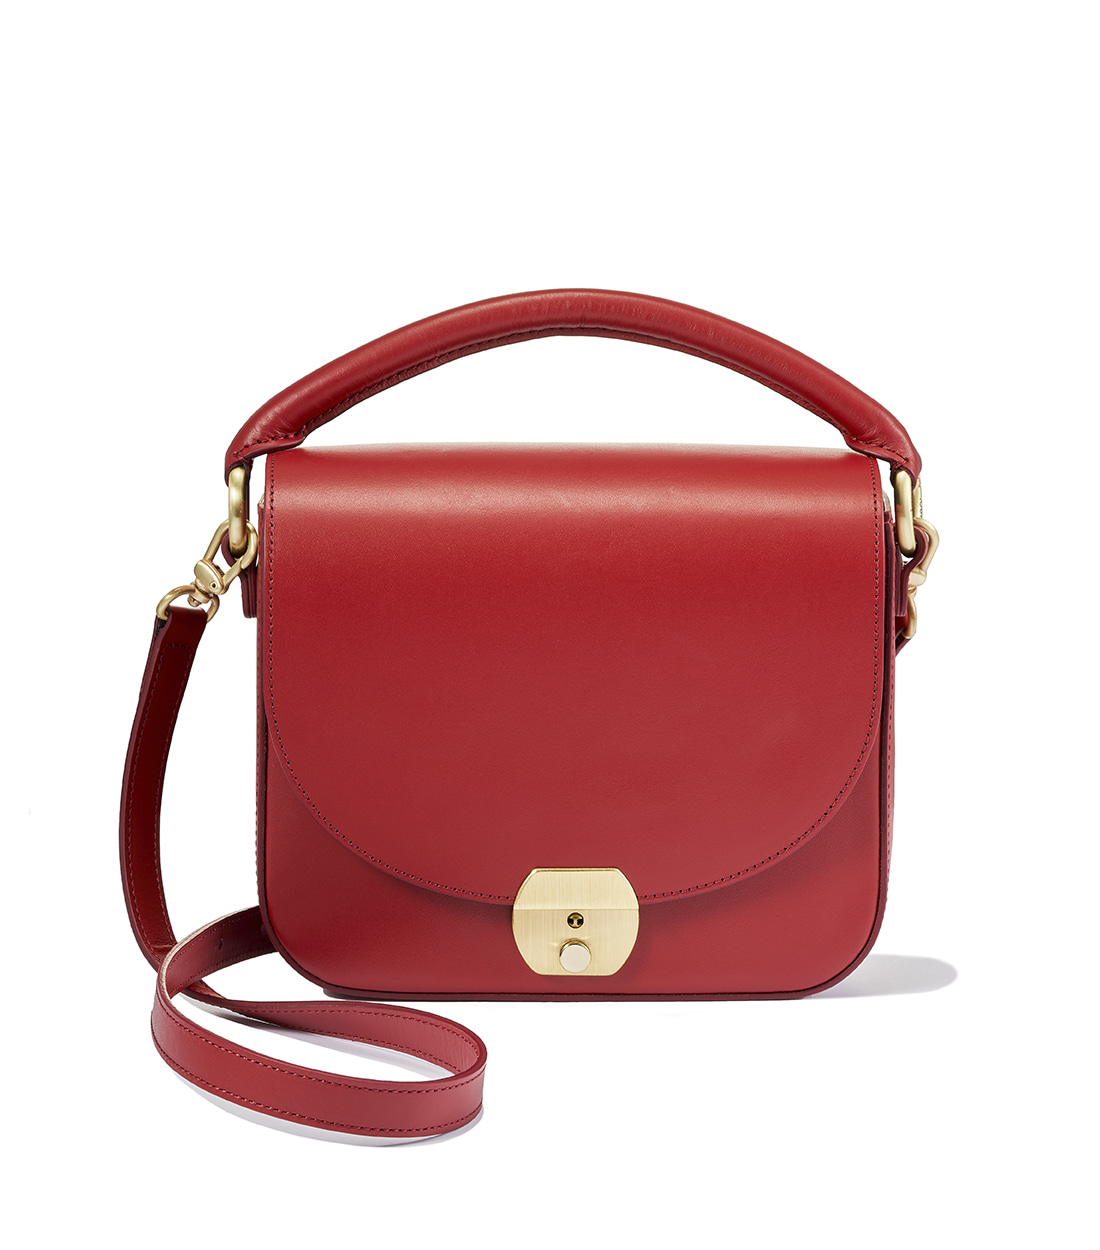 betty bag - scarlet [refurb 50%]